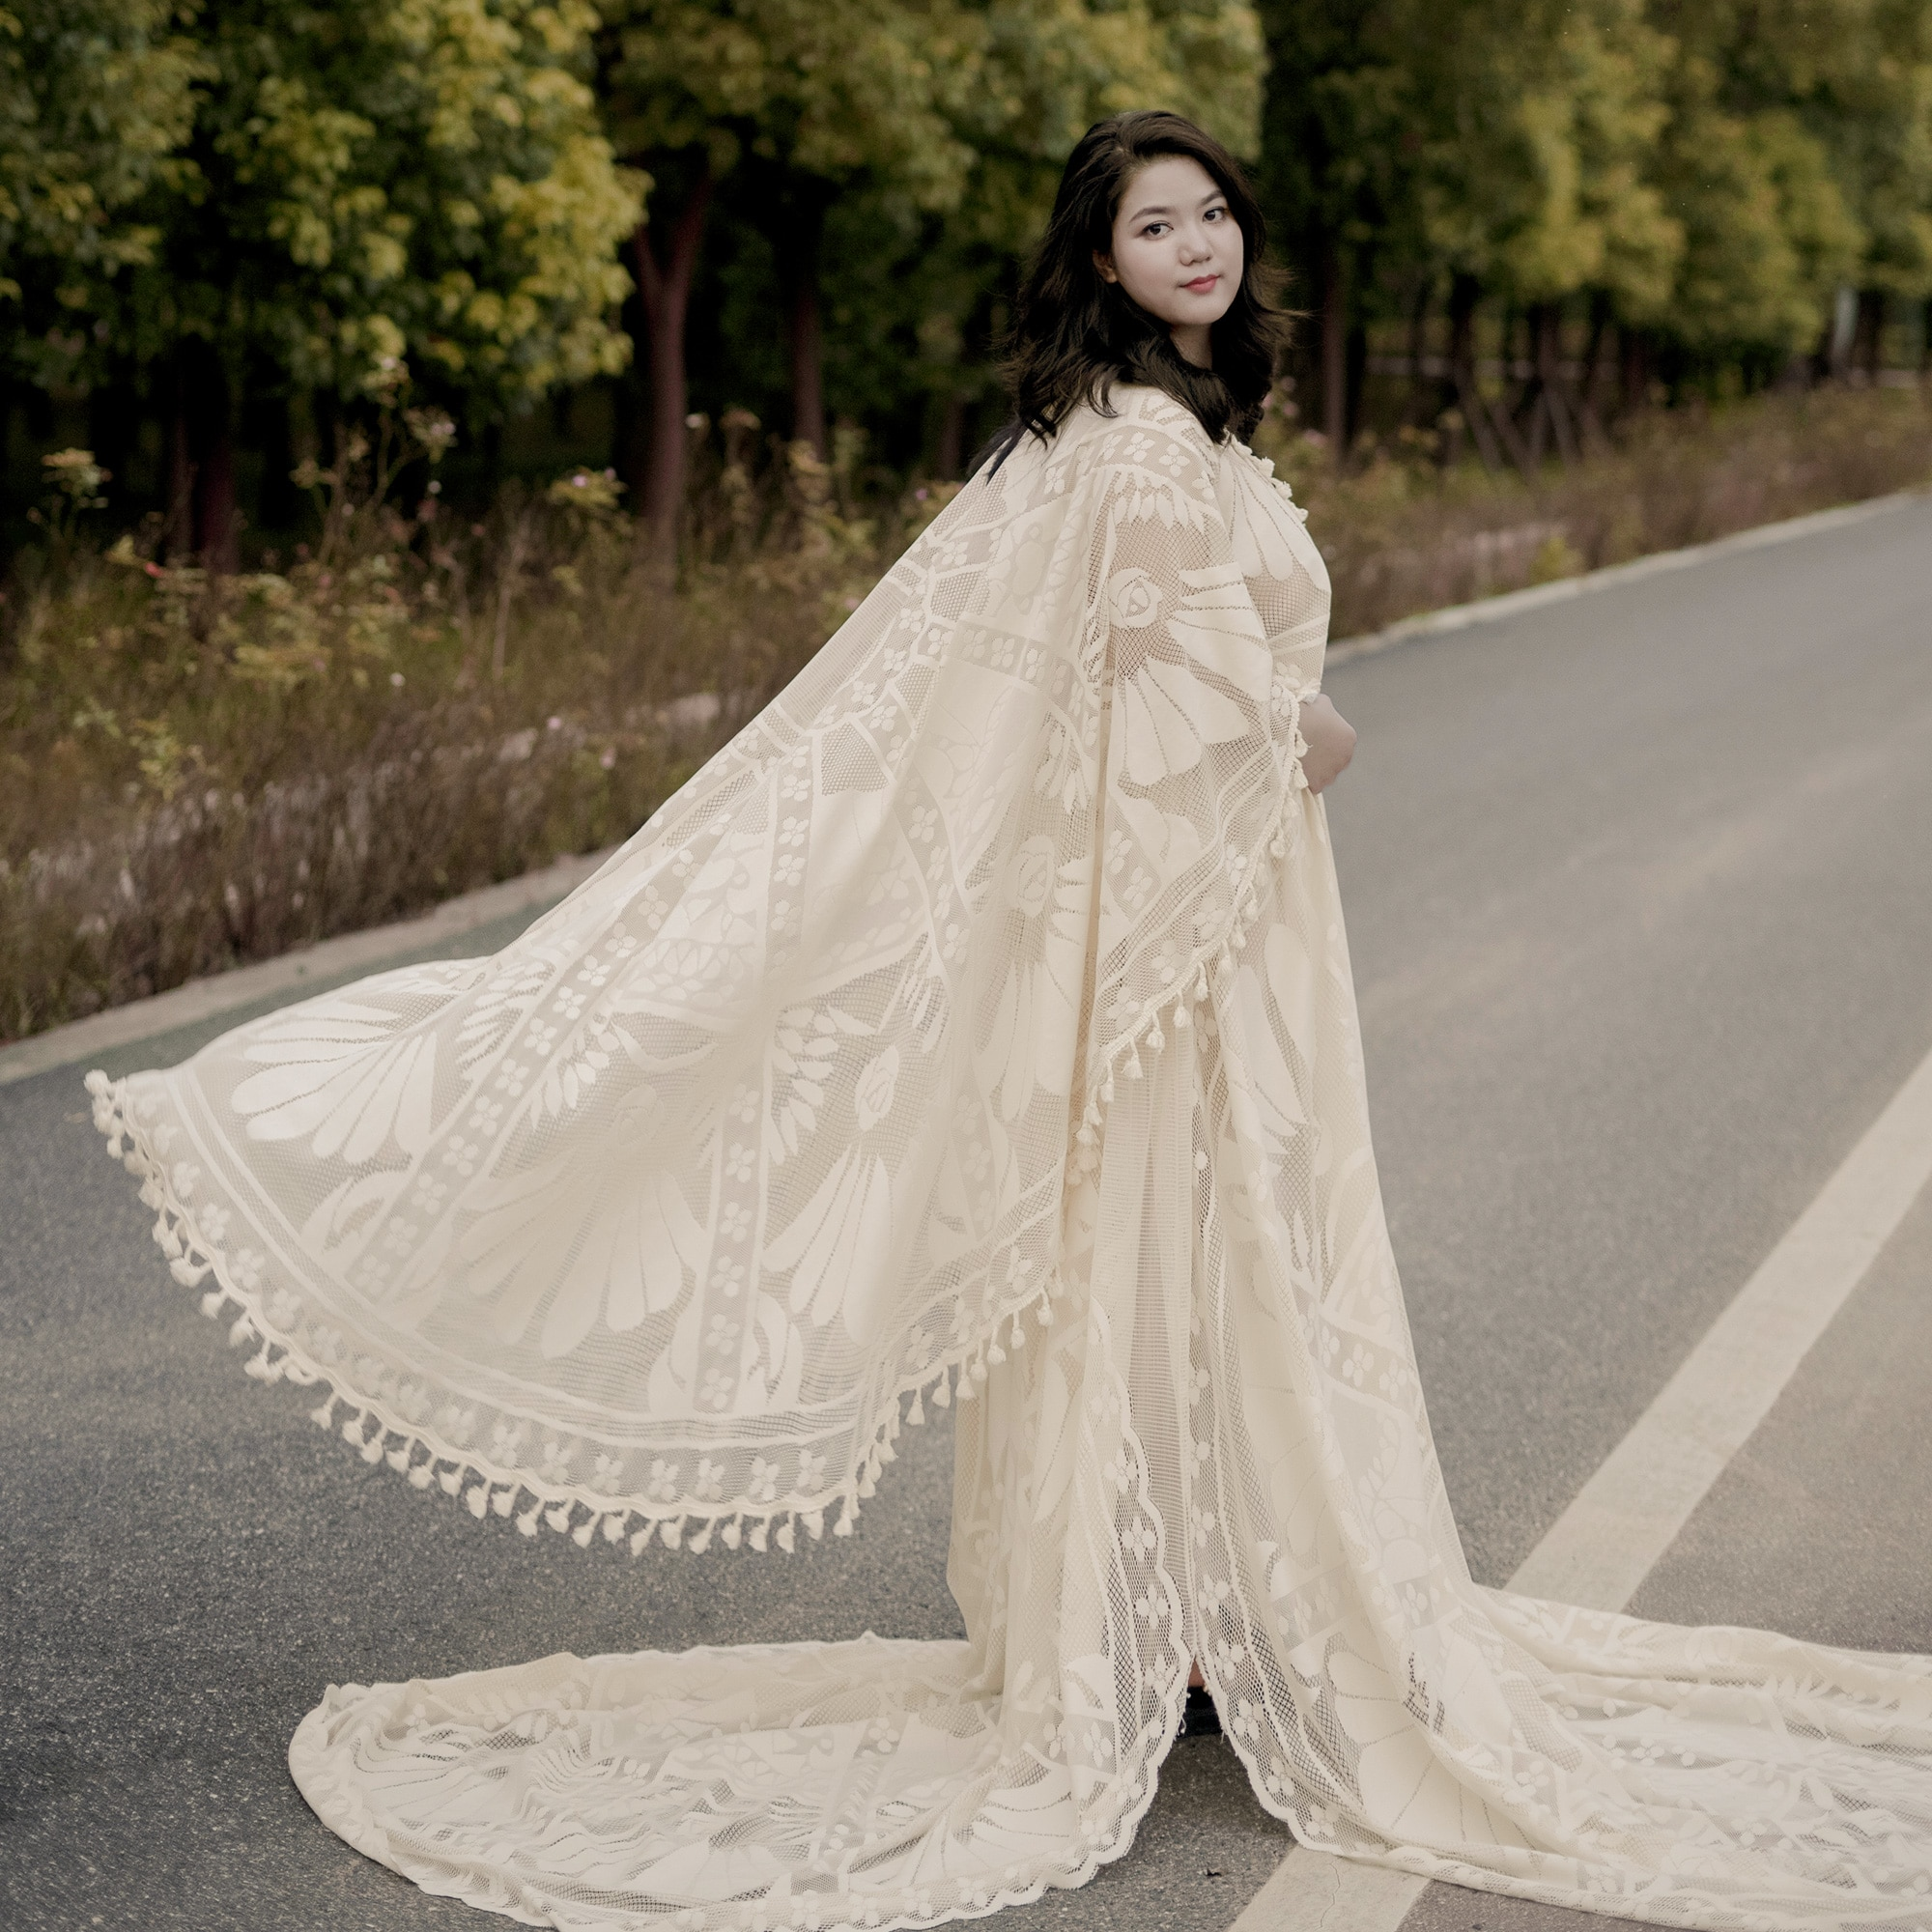 Don&Judy Beige Long Cape Maternity Photography Lace Dress Pregnancy Bohemia Photo Shoot Dresses Fitting Baby Shower 2021